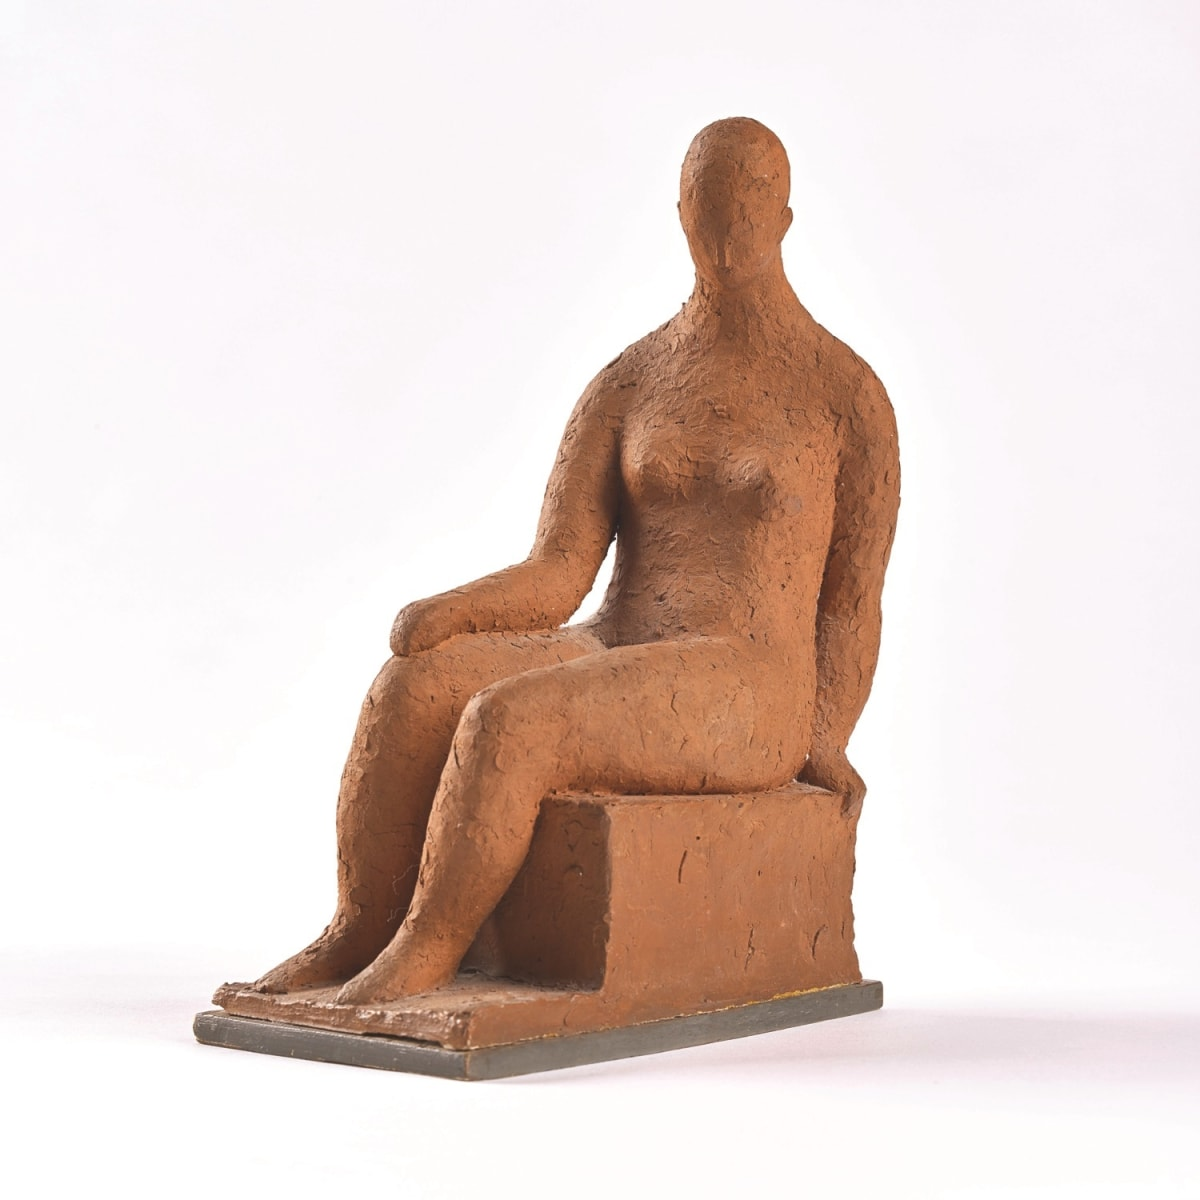 Hannah Frank Seated Figure signed H Levy; signed and titled in pen to base clay 9 3/4 x 4 x 6 1/2 inches